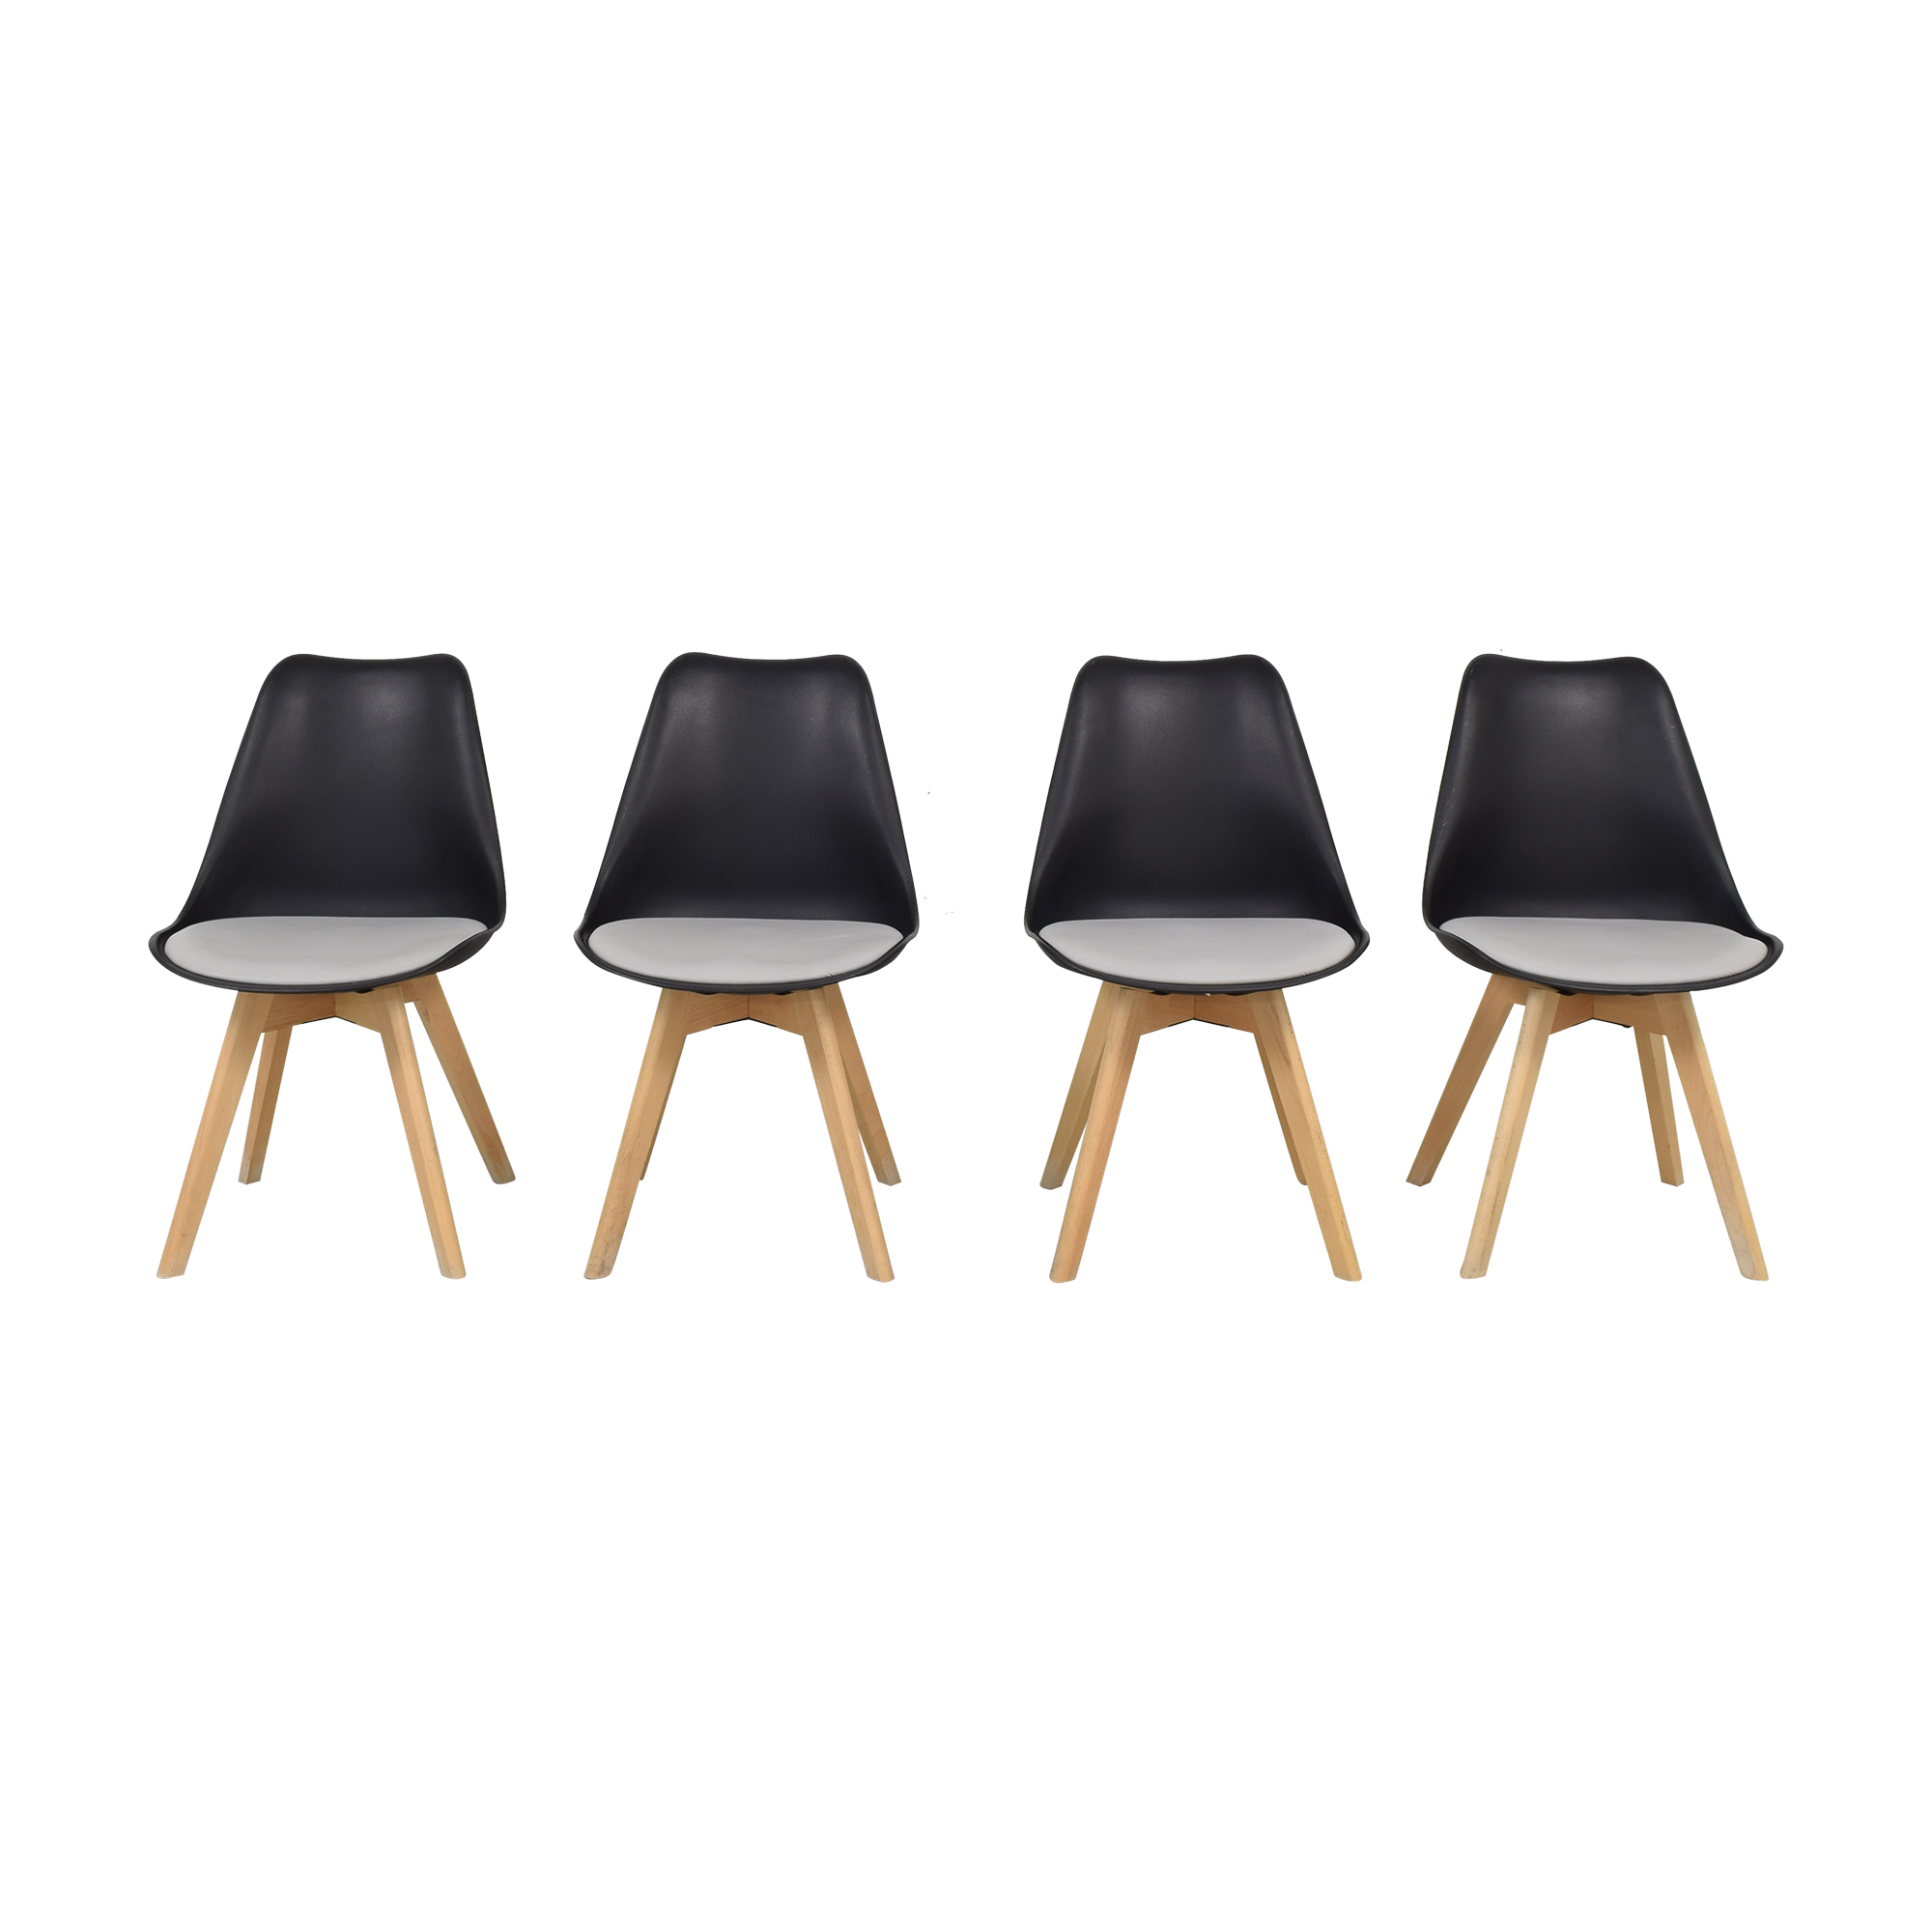 Black Molded Plastic Chairs with Wooden Legs